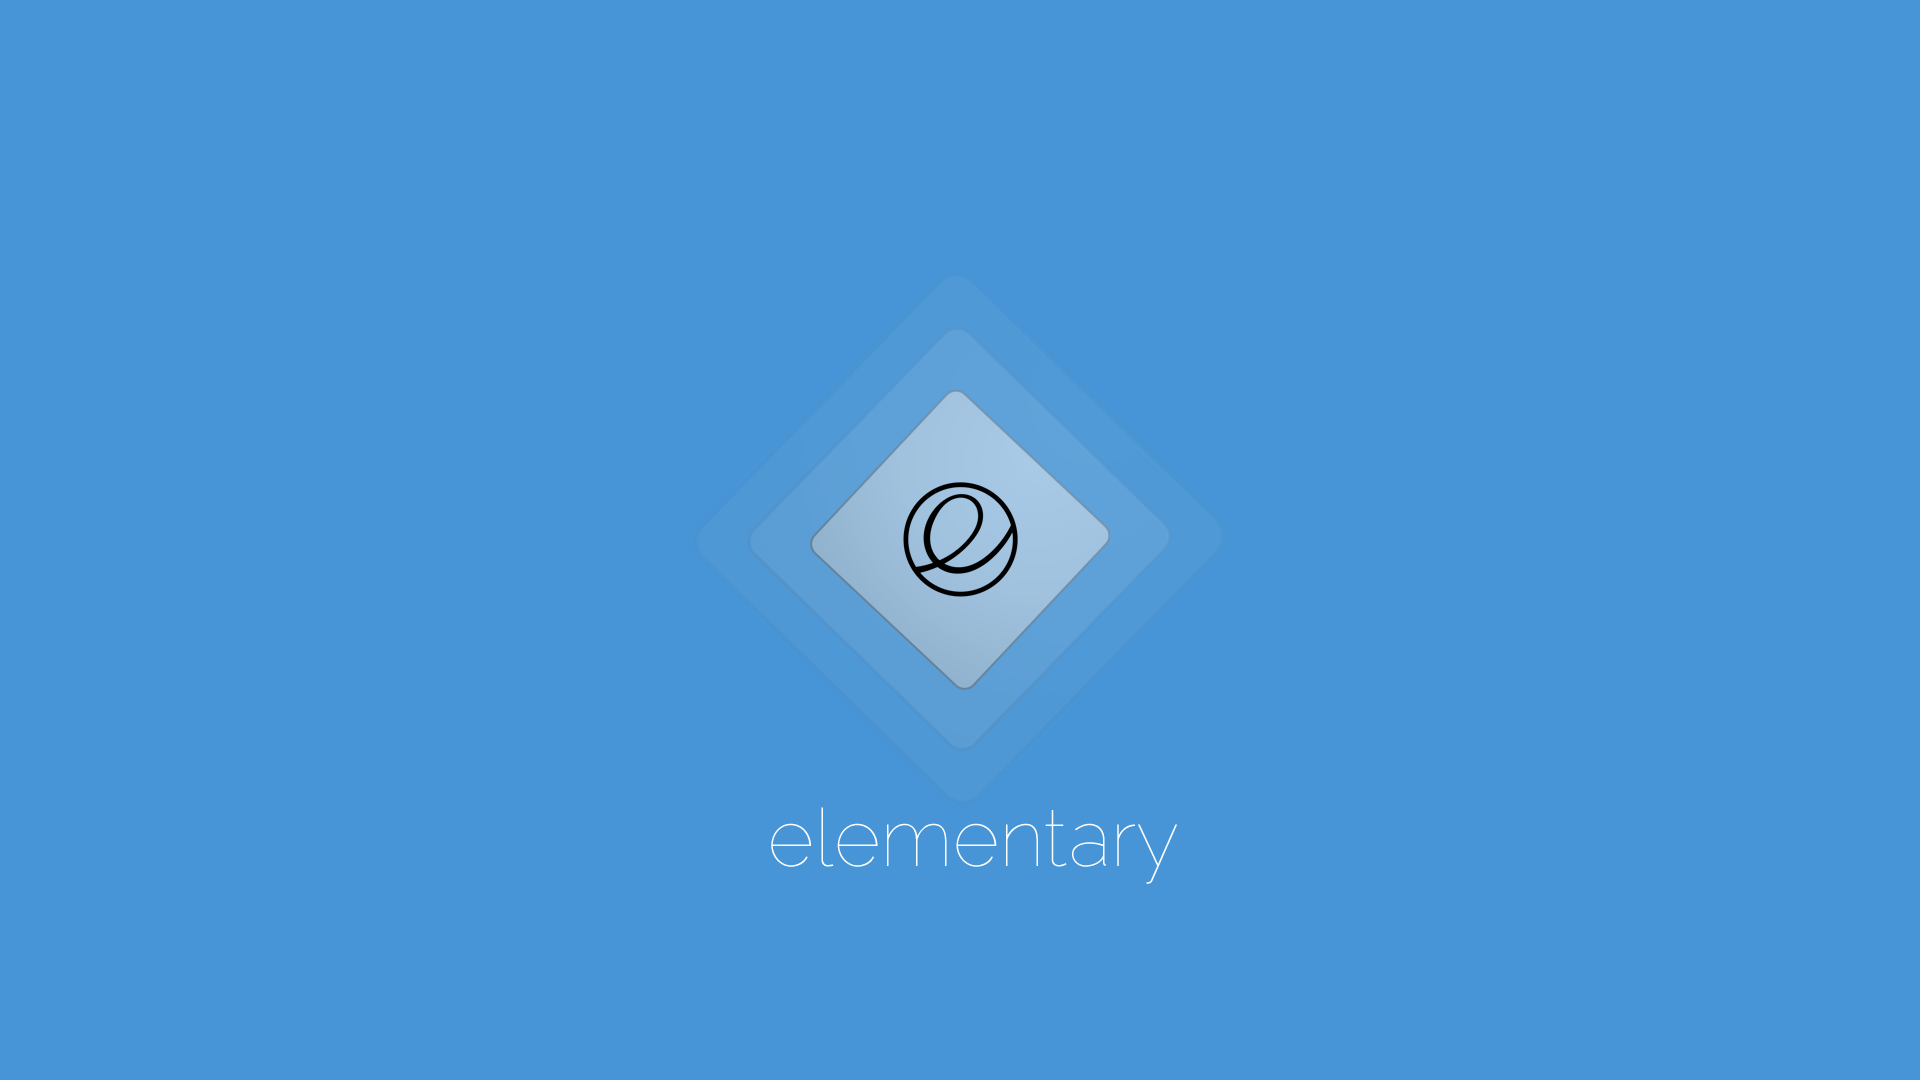 Elementary OS Wallpapers   Tux planet 1920x1080